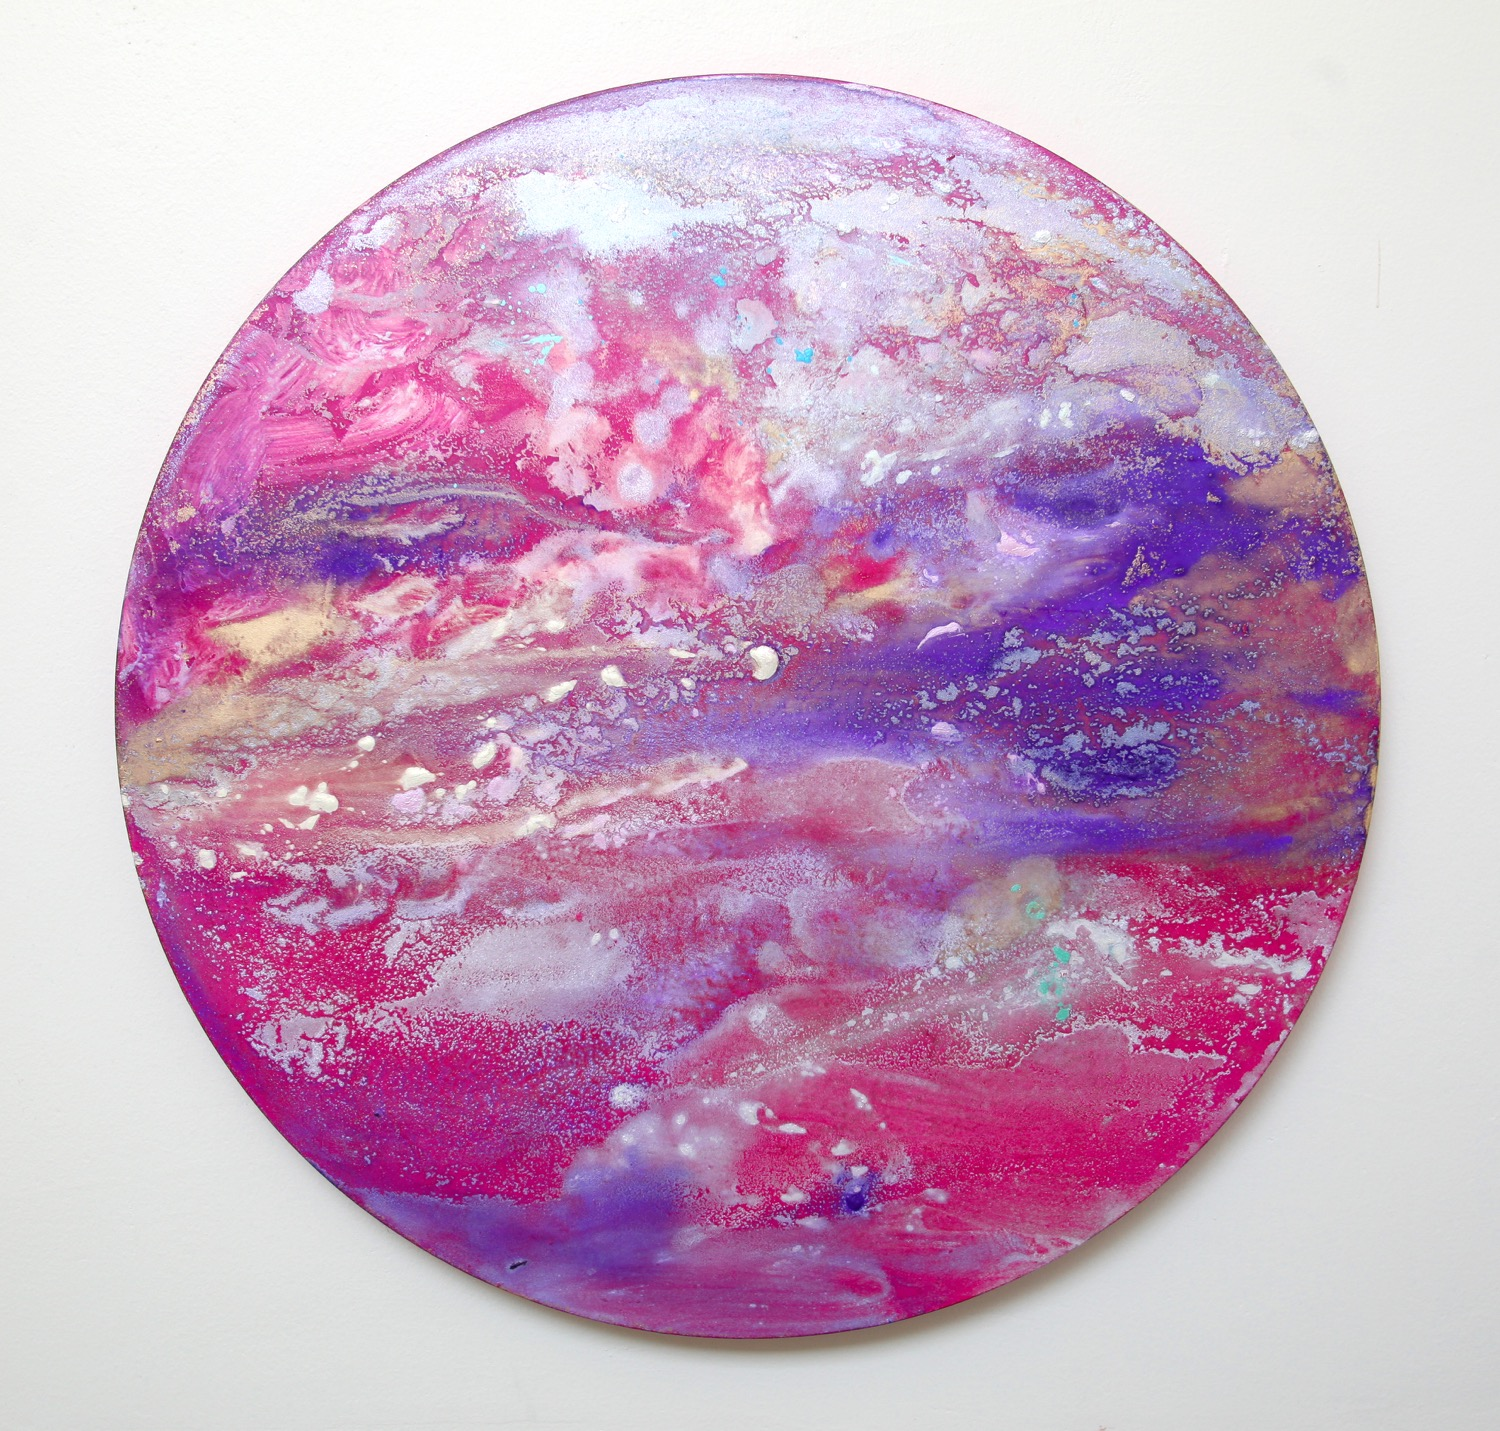 T17  2015  Acrylic and metal powder on board  53cm diameter